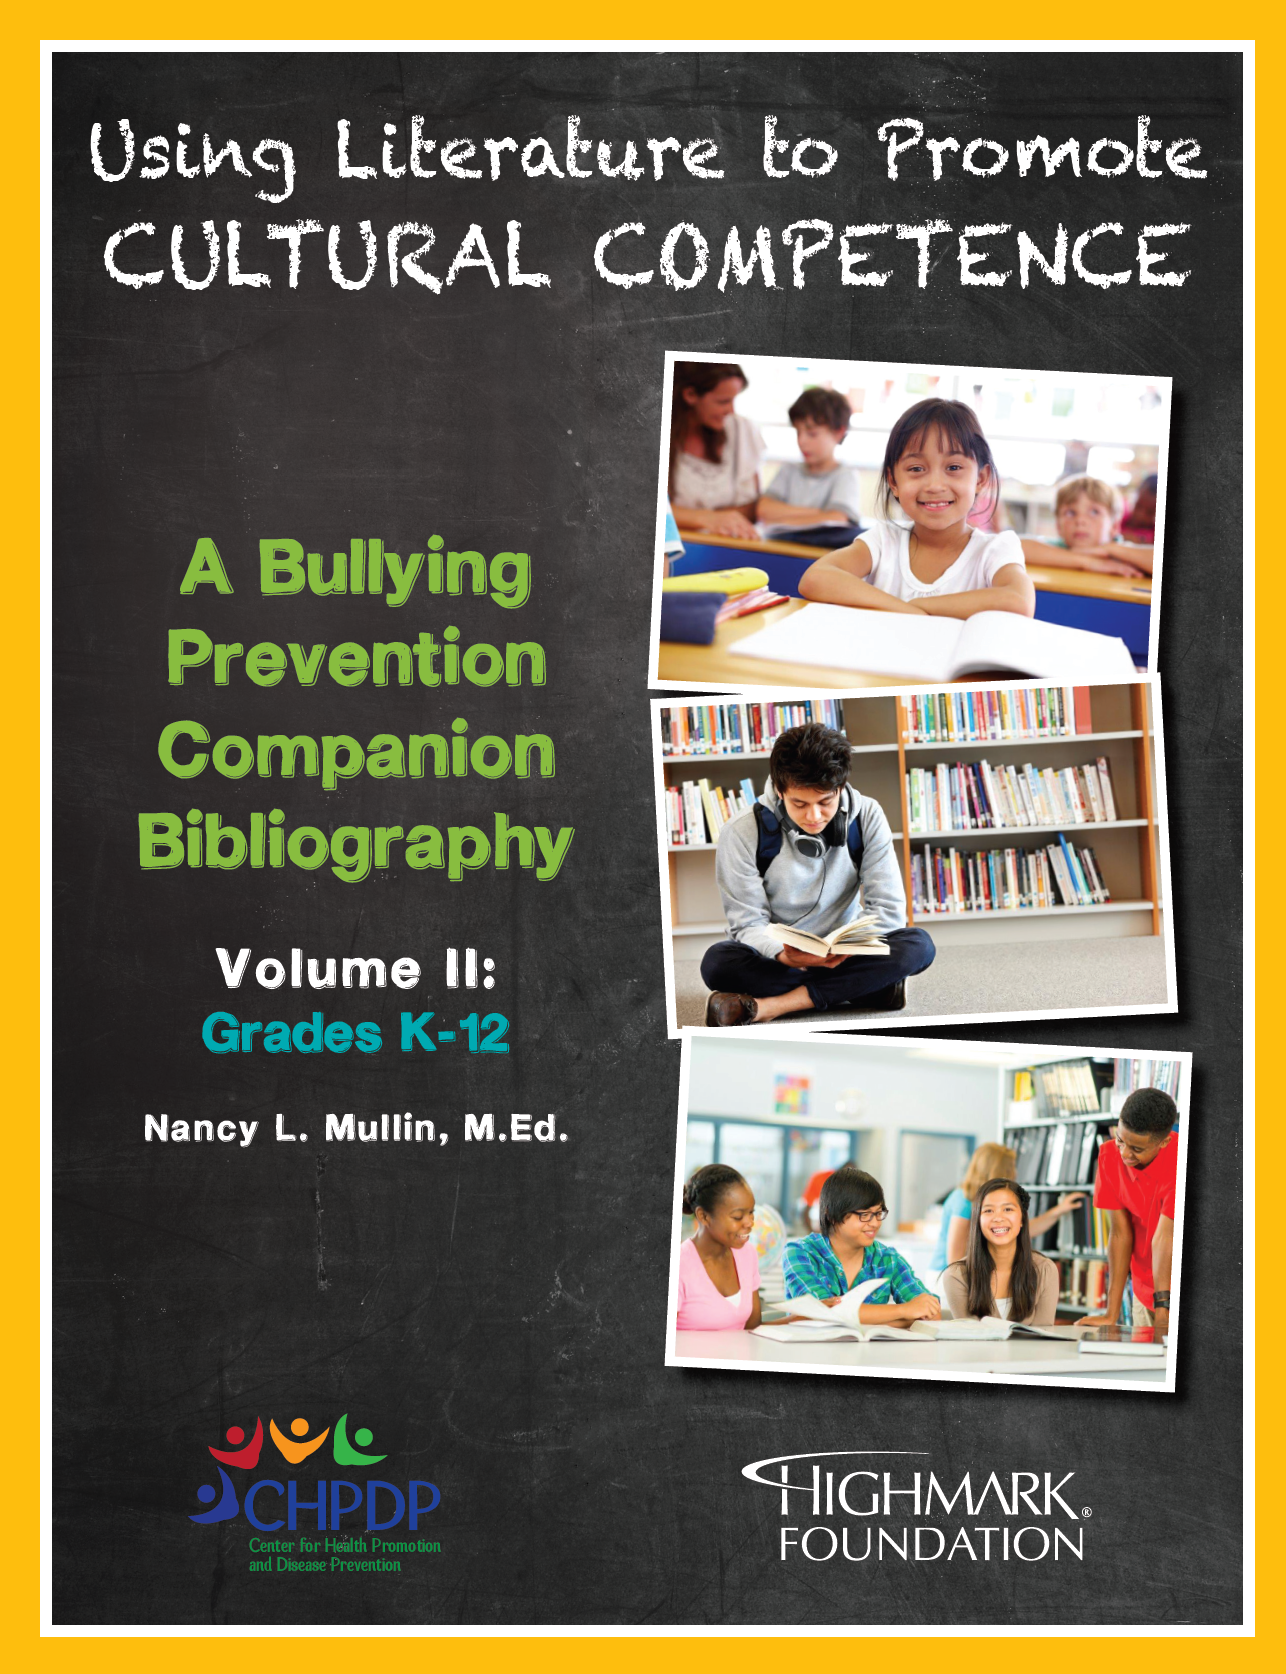 New Bullying Prevention Resource Now Available